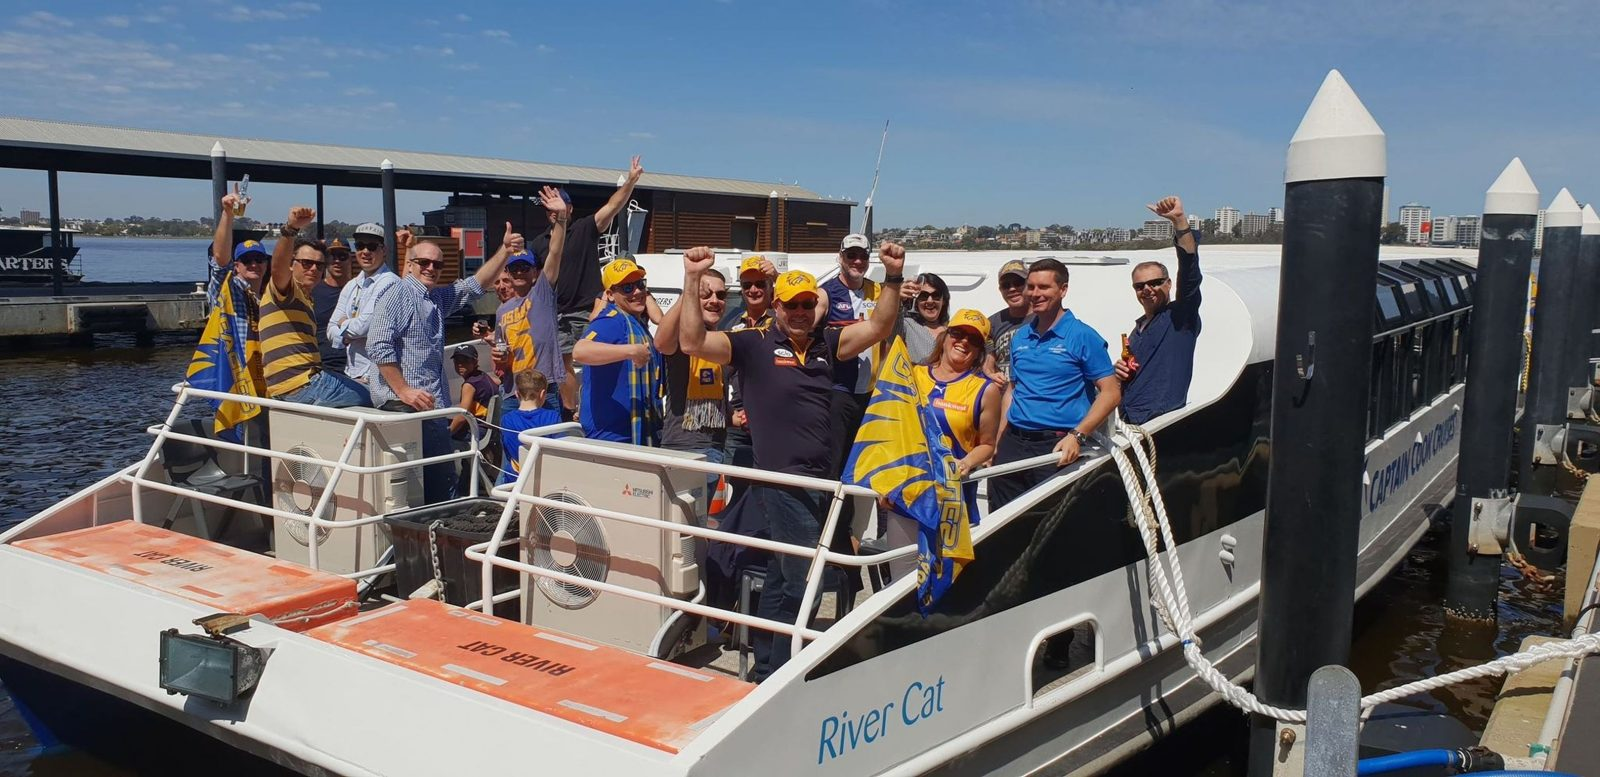 AFL Dine and Cruise, Perth, Western Australia